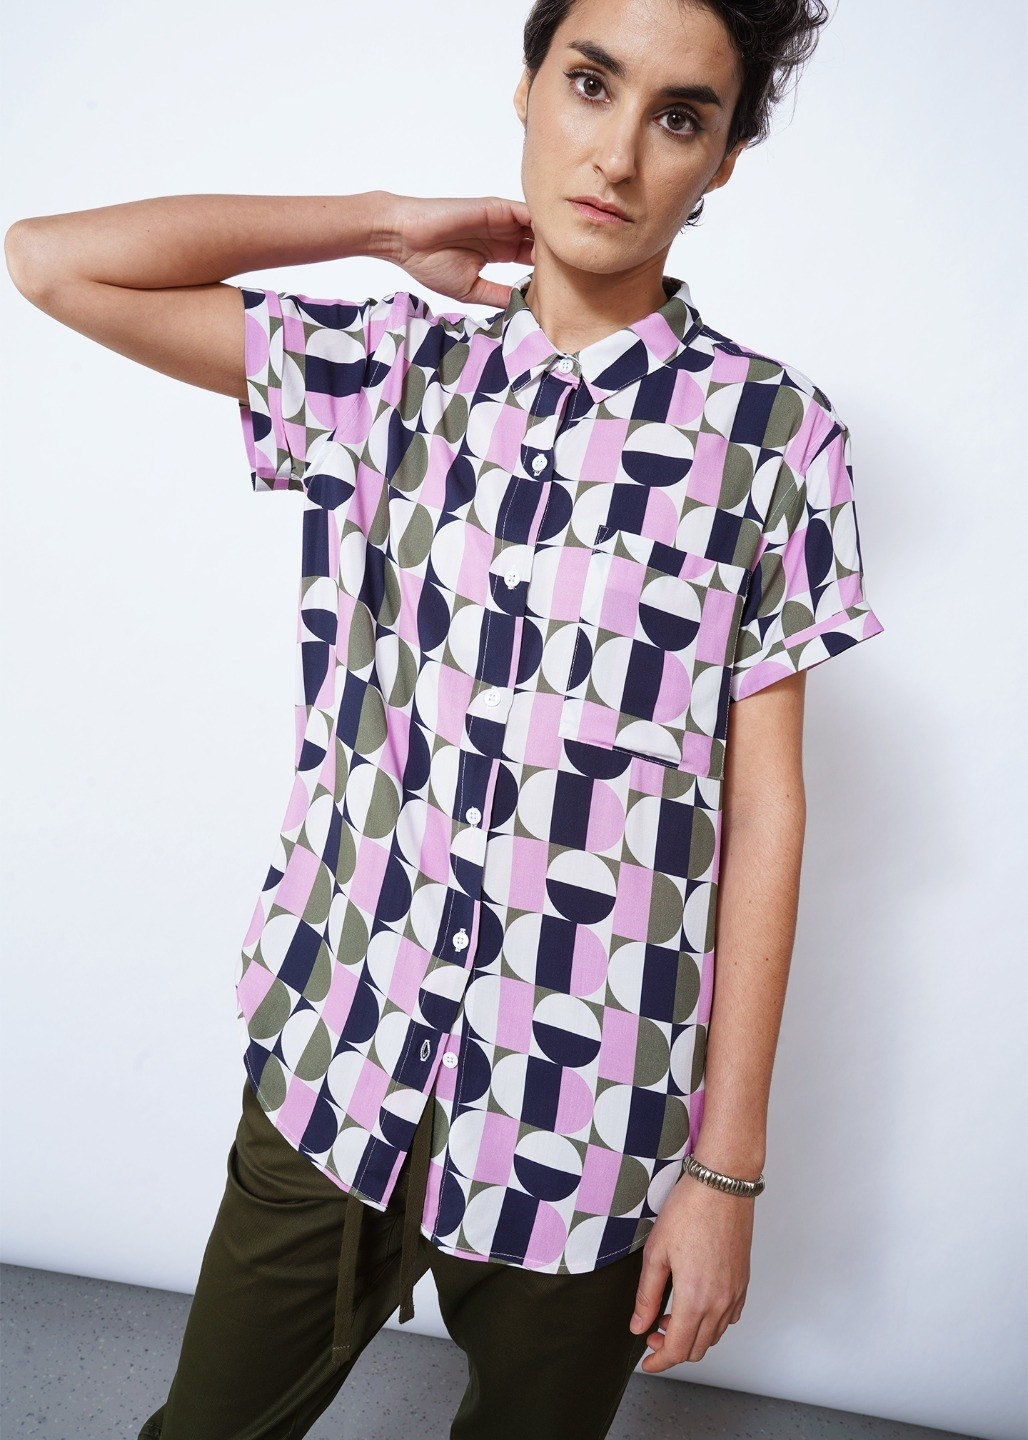 model wears geometric shirt with circles and squares